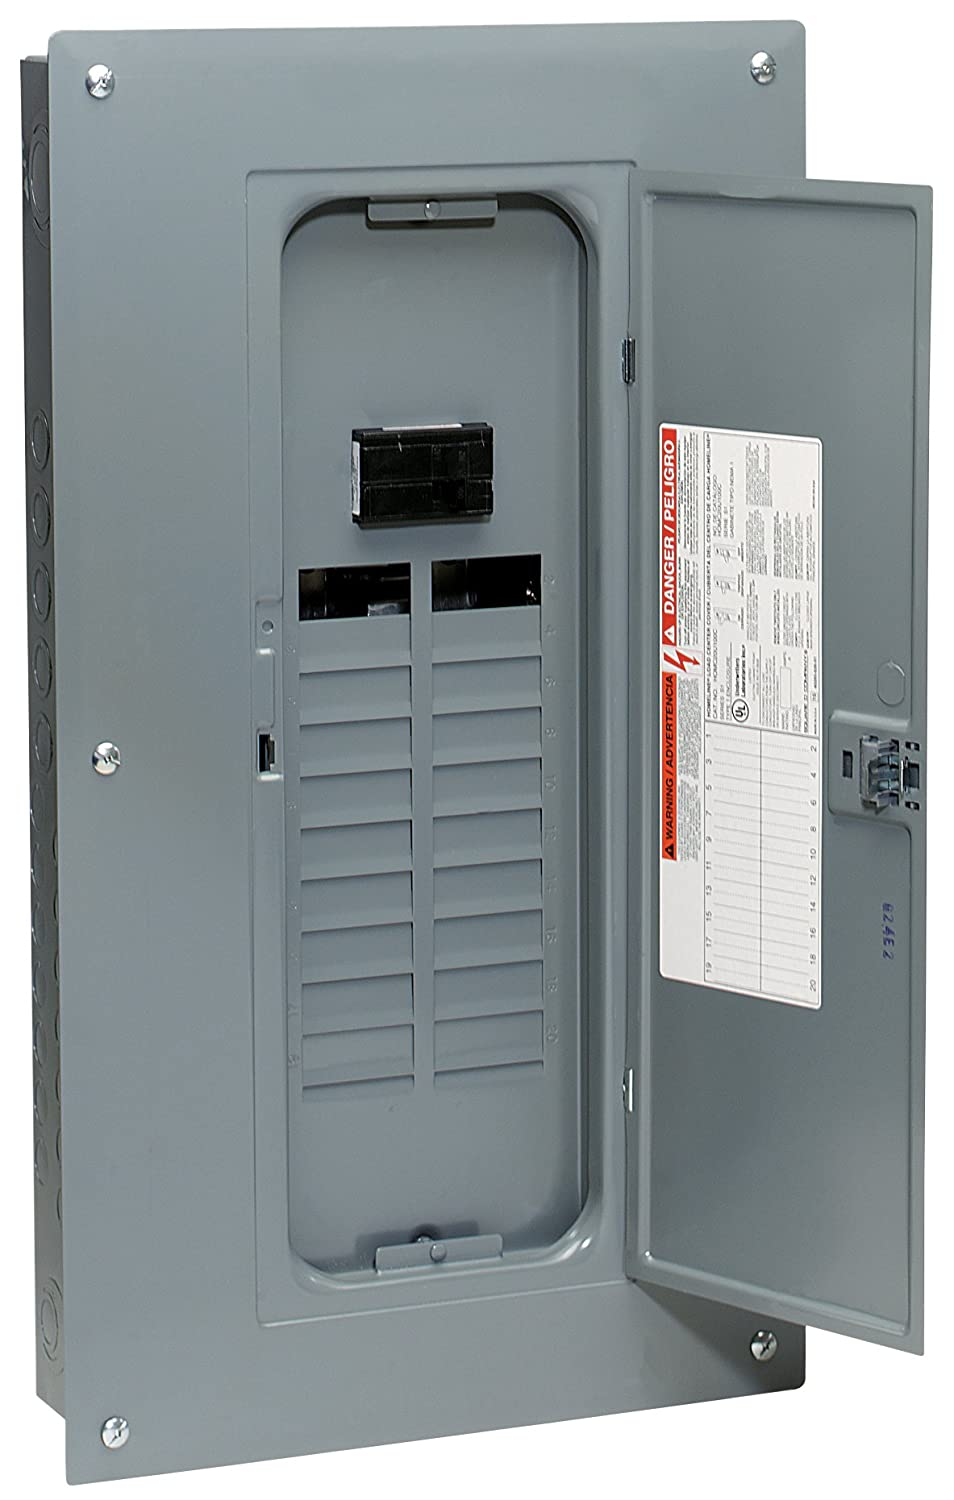 Square d by schneider electric hom20m100c homeline 100 amp 20 square d by schneider electric hom20m100c homeline 100 amp 20 space 20 circuit indoor main breaker load center with cover circuit breakers amazon keyboard keysfo Gallery